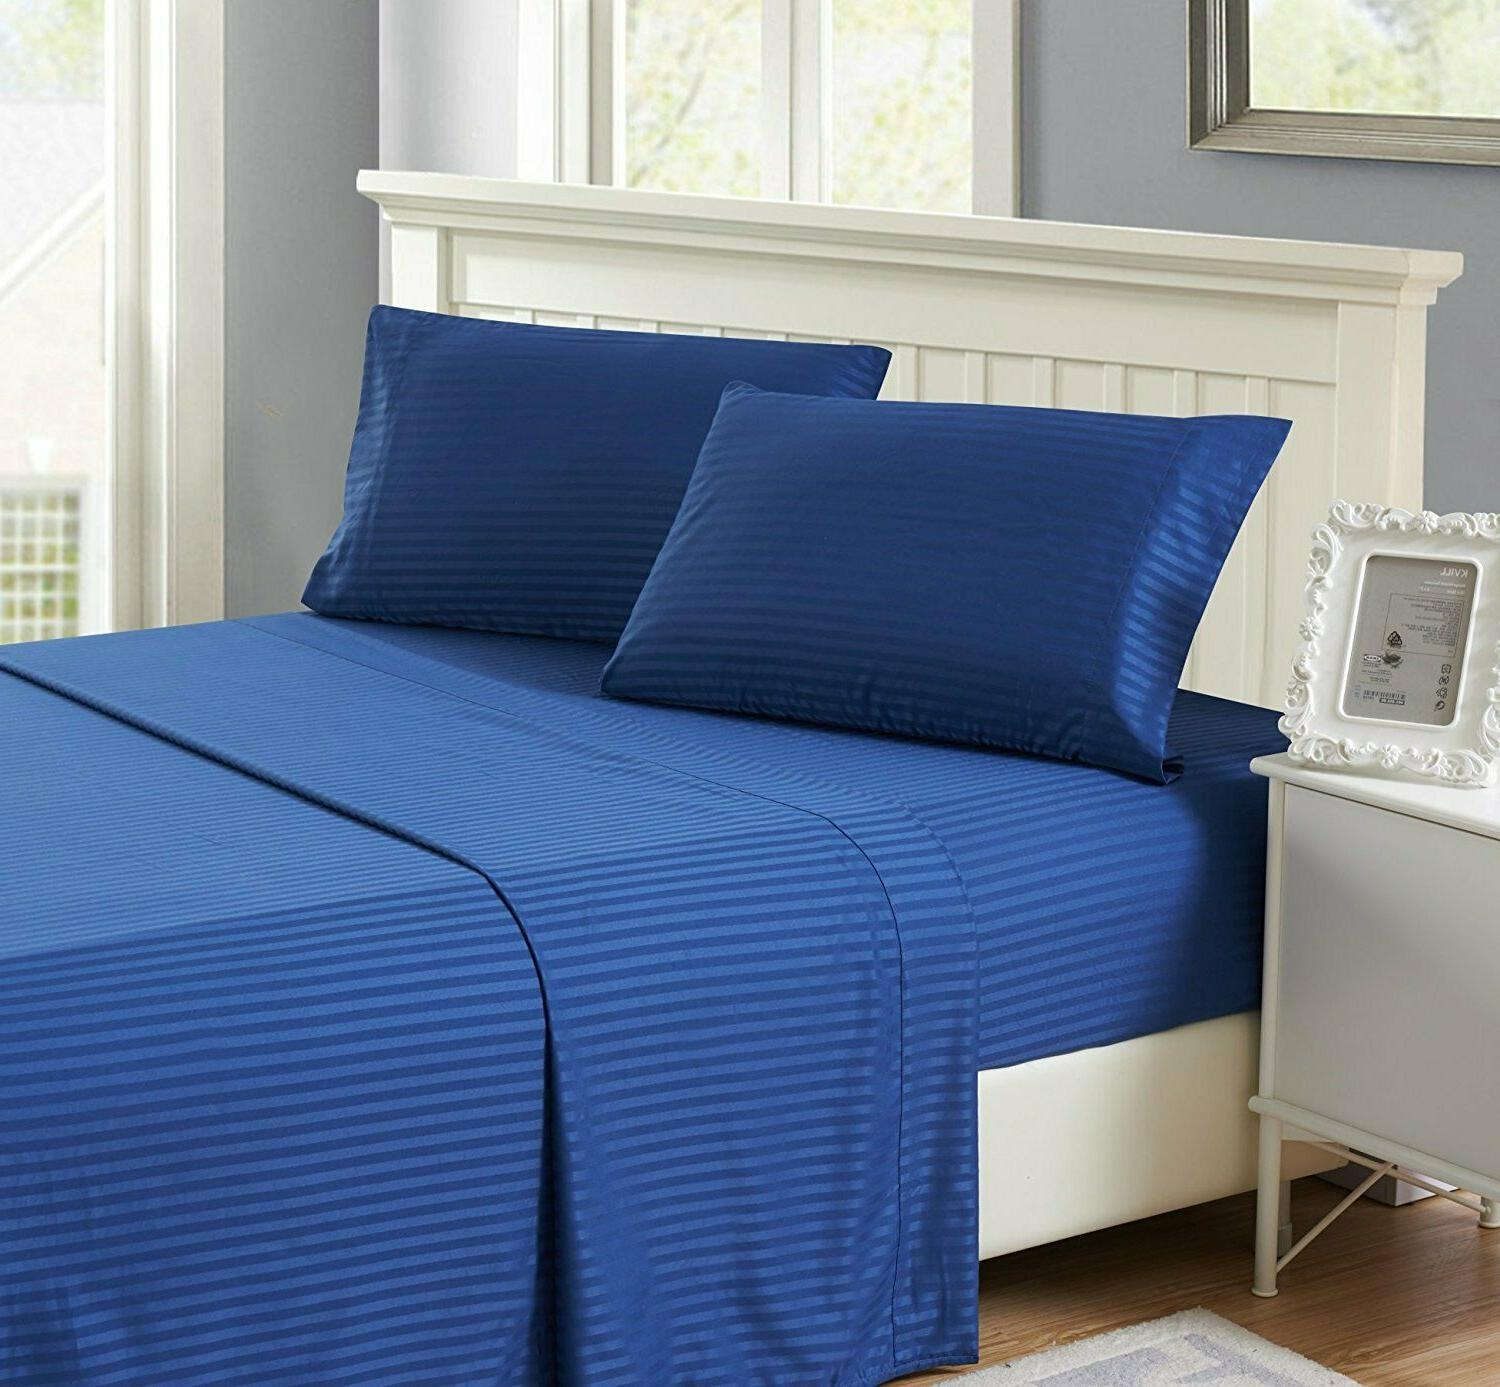 4 Piece Bed Sheets 1800 Count Egyptian Comfort Deep Pocket H